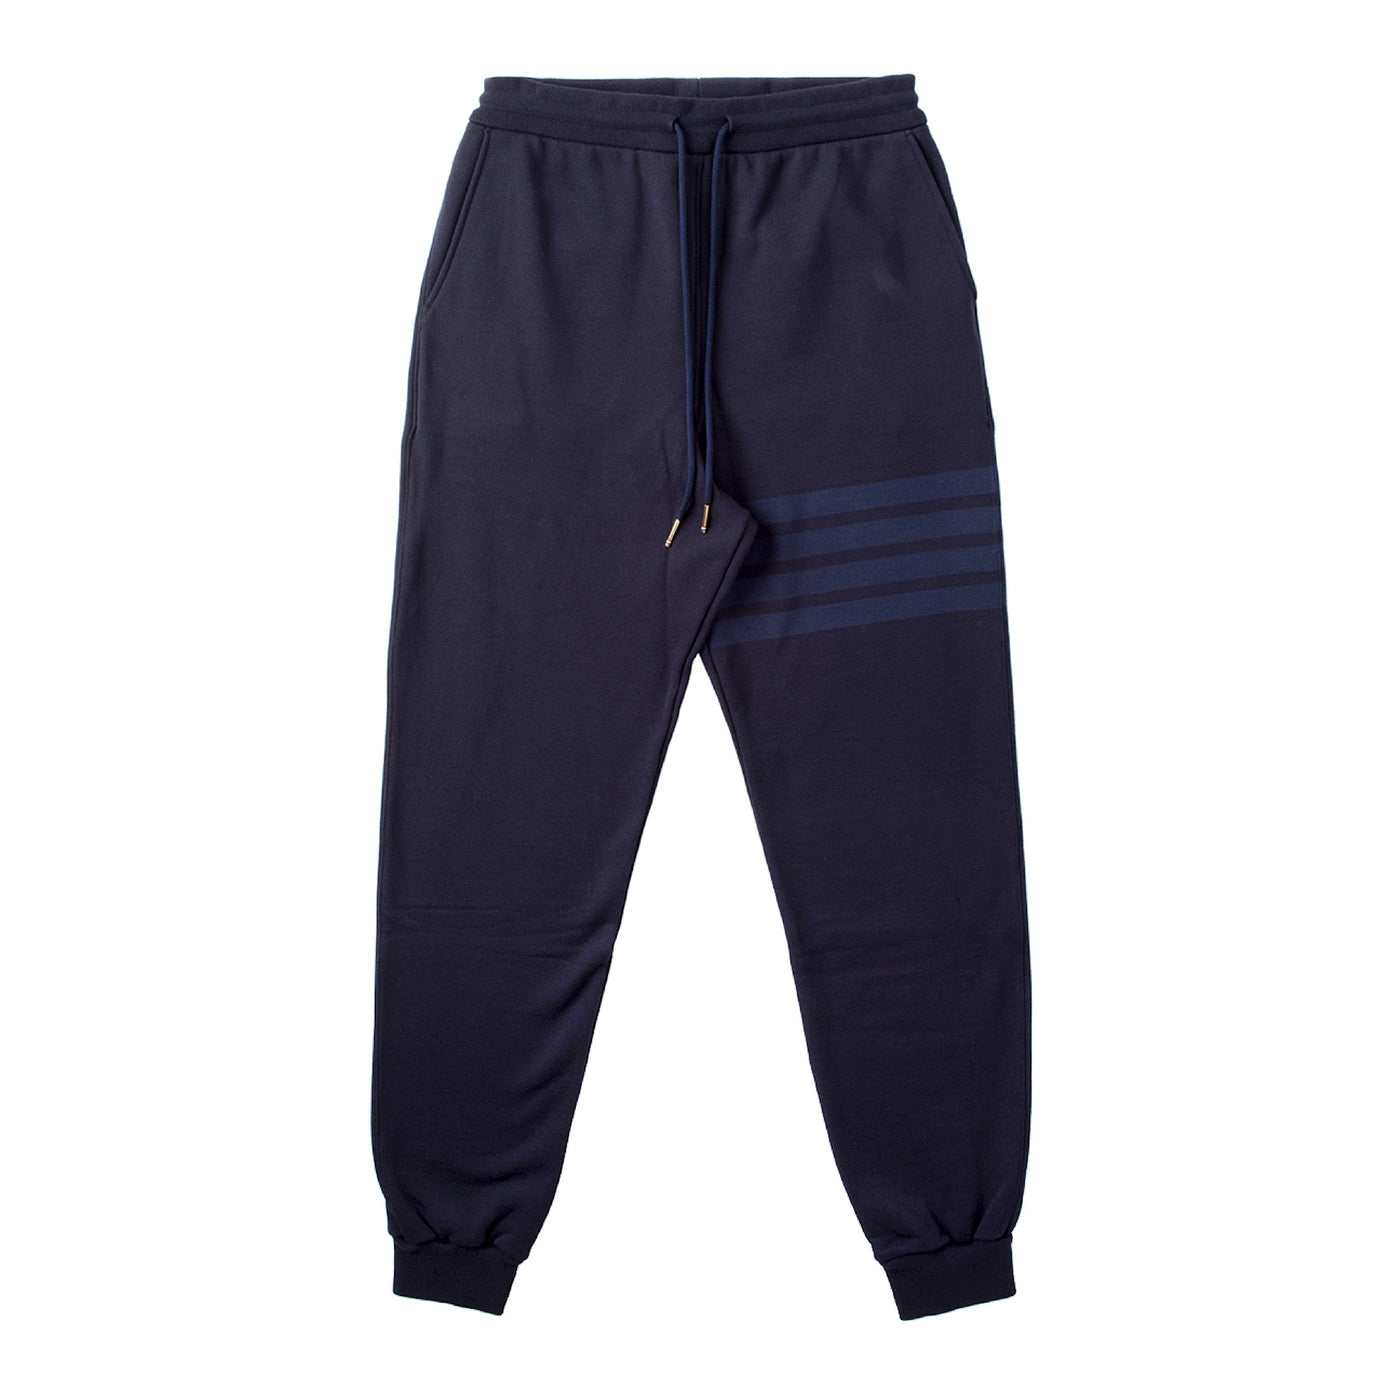 Load image into Gallery viewer, THOM BROWNE SWEATPANTS NAVY